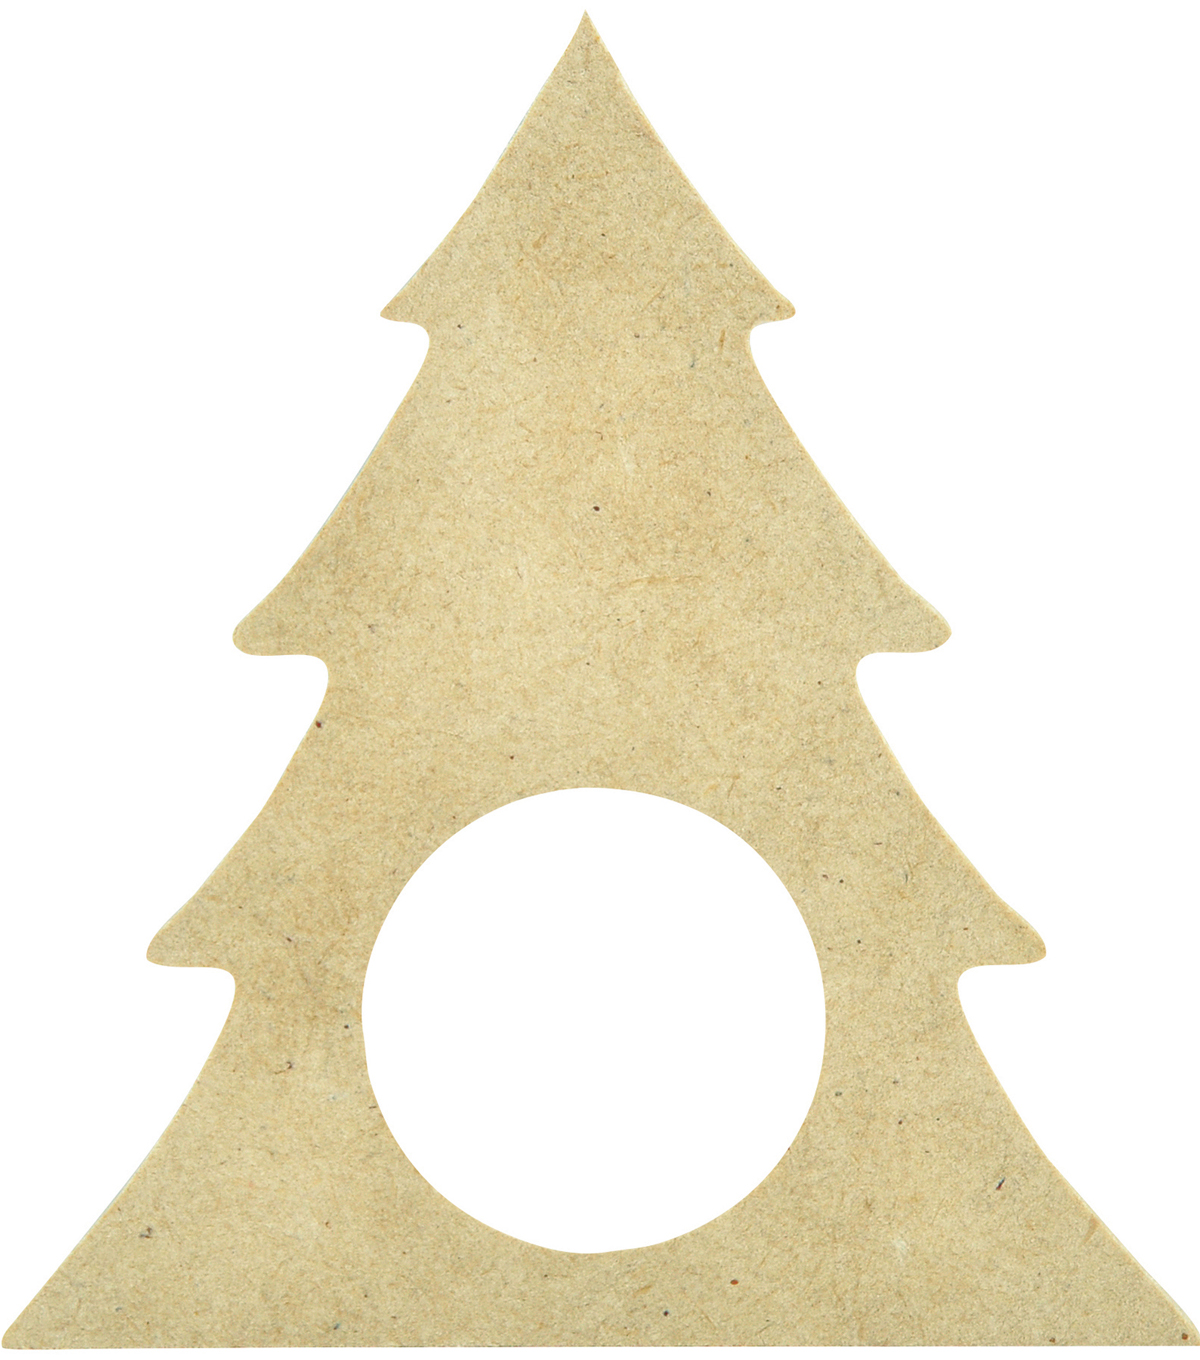 Kaisercraft 6 pk Beyond The Page MDF Tree Serviette Holders